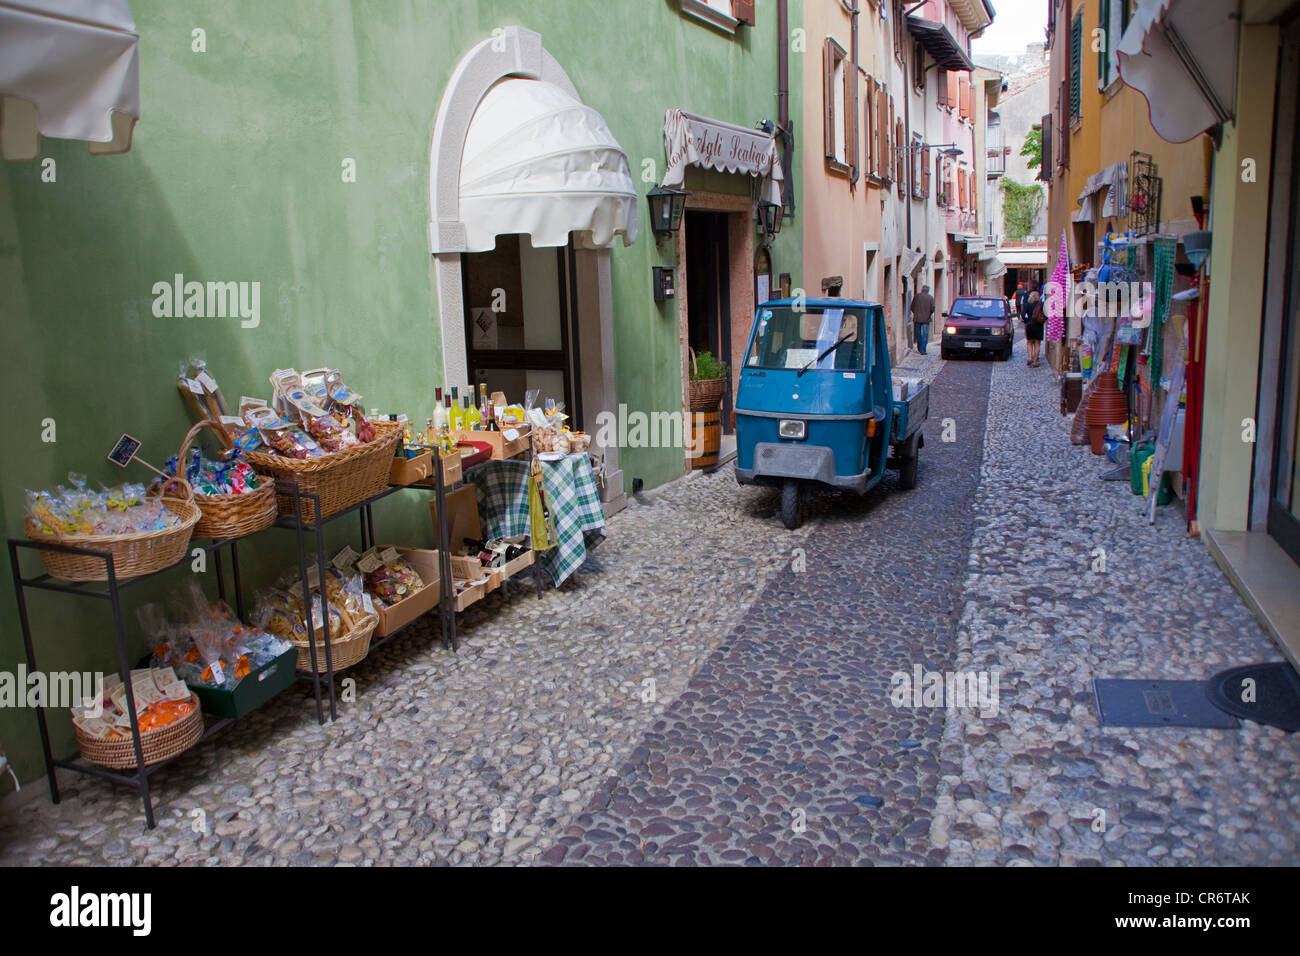 Alley in the old town, with Ape tricycle, mini car, Malcesine, Lake Garda, Verona Province, Veneto, Italy, Europe - Stock Image